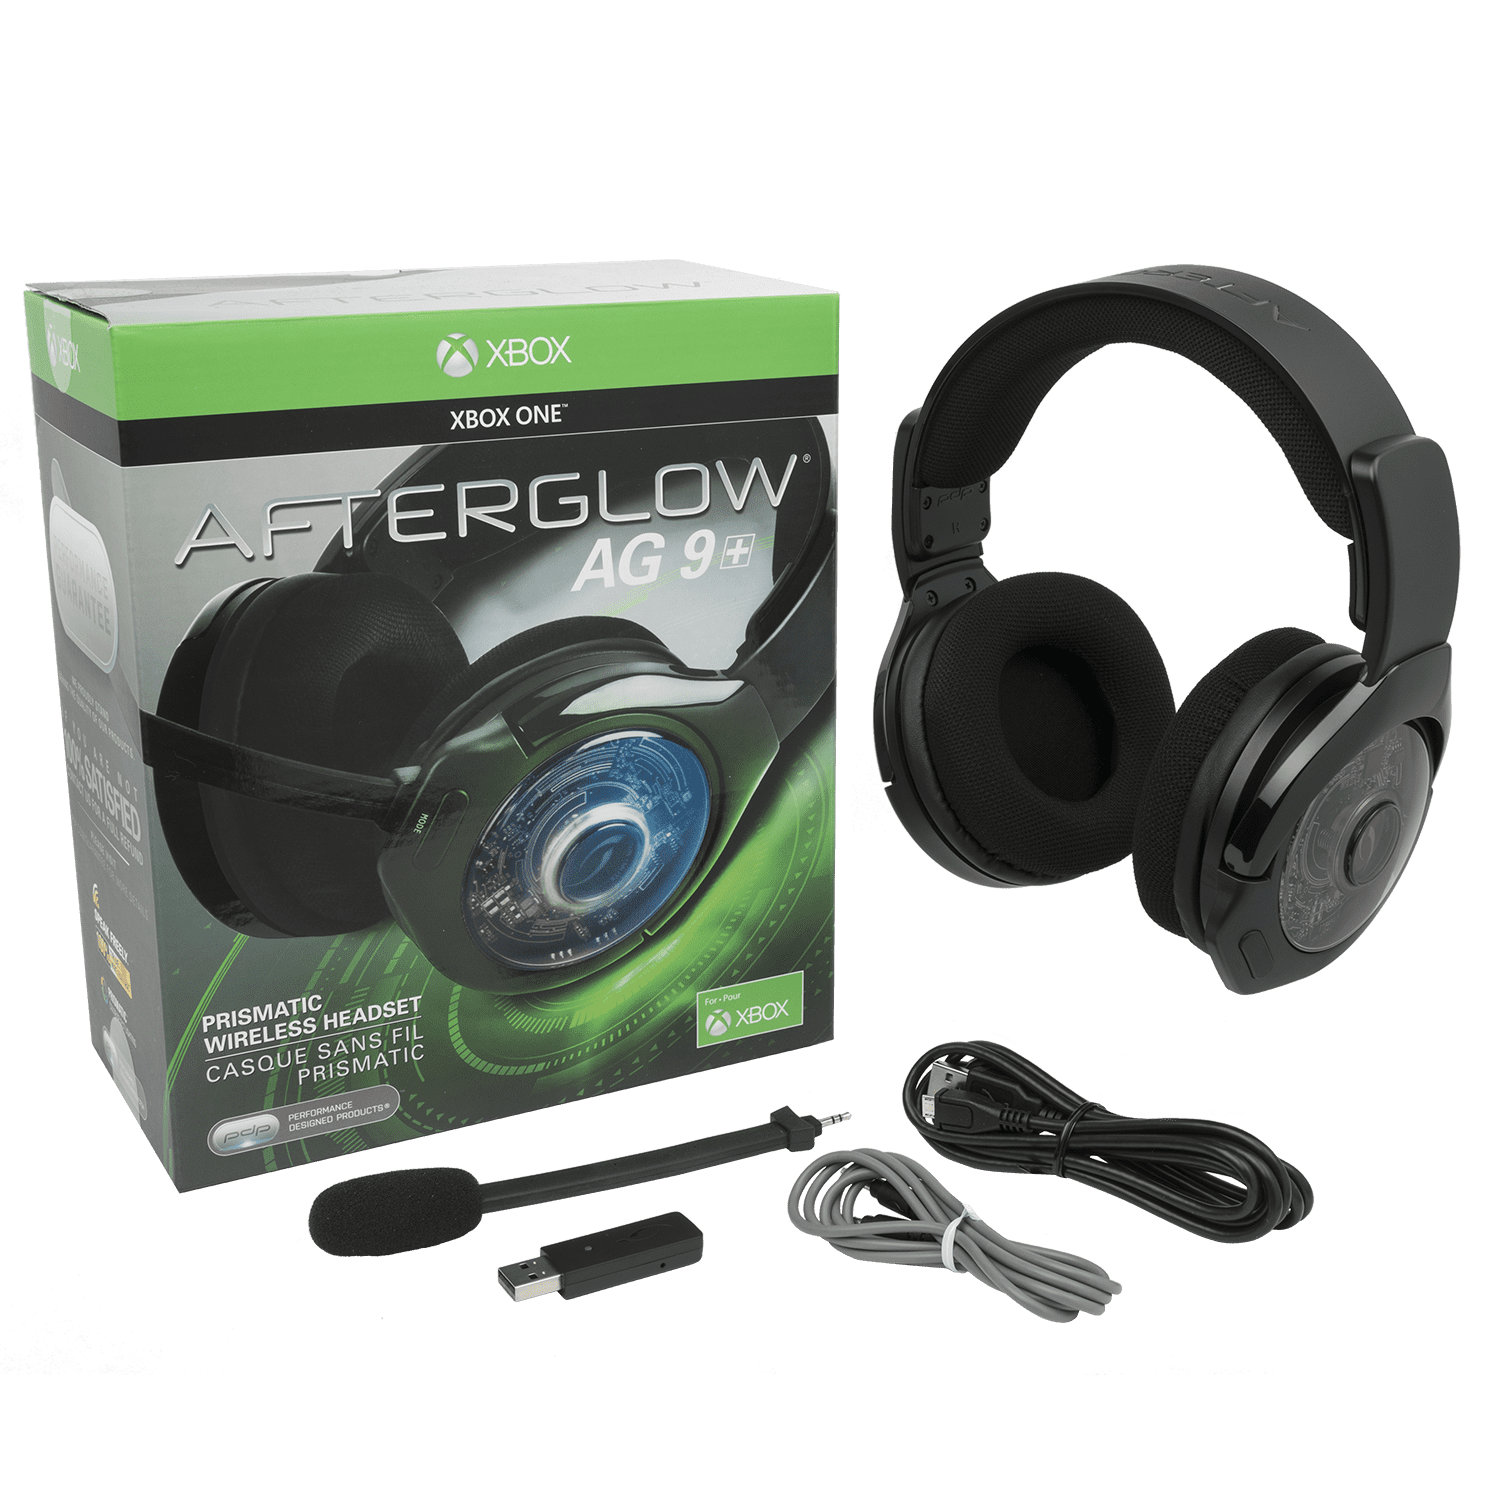 83430de3239 PDP Xbox One Afterglow AG 9+ Prismatic True Wireless Gaming Headset, Black,  048-056-NA - Walmart.com